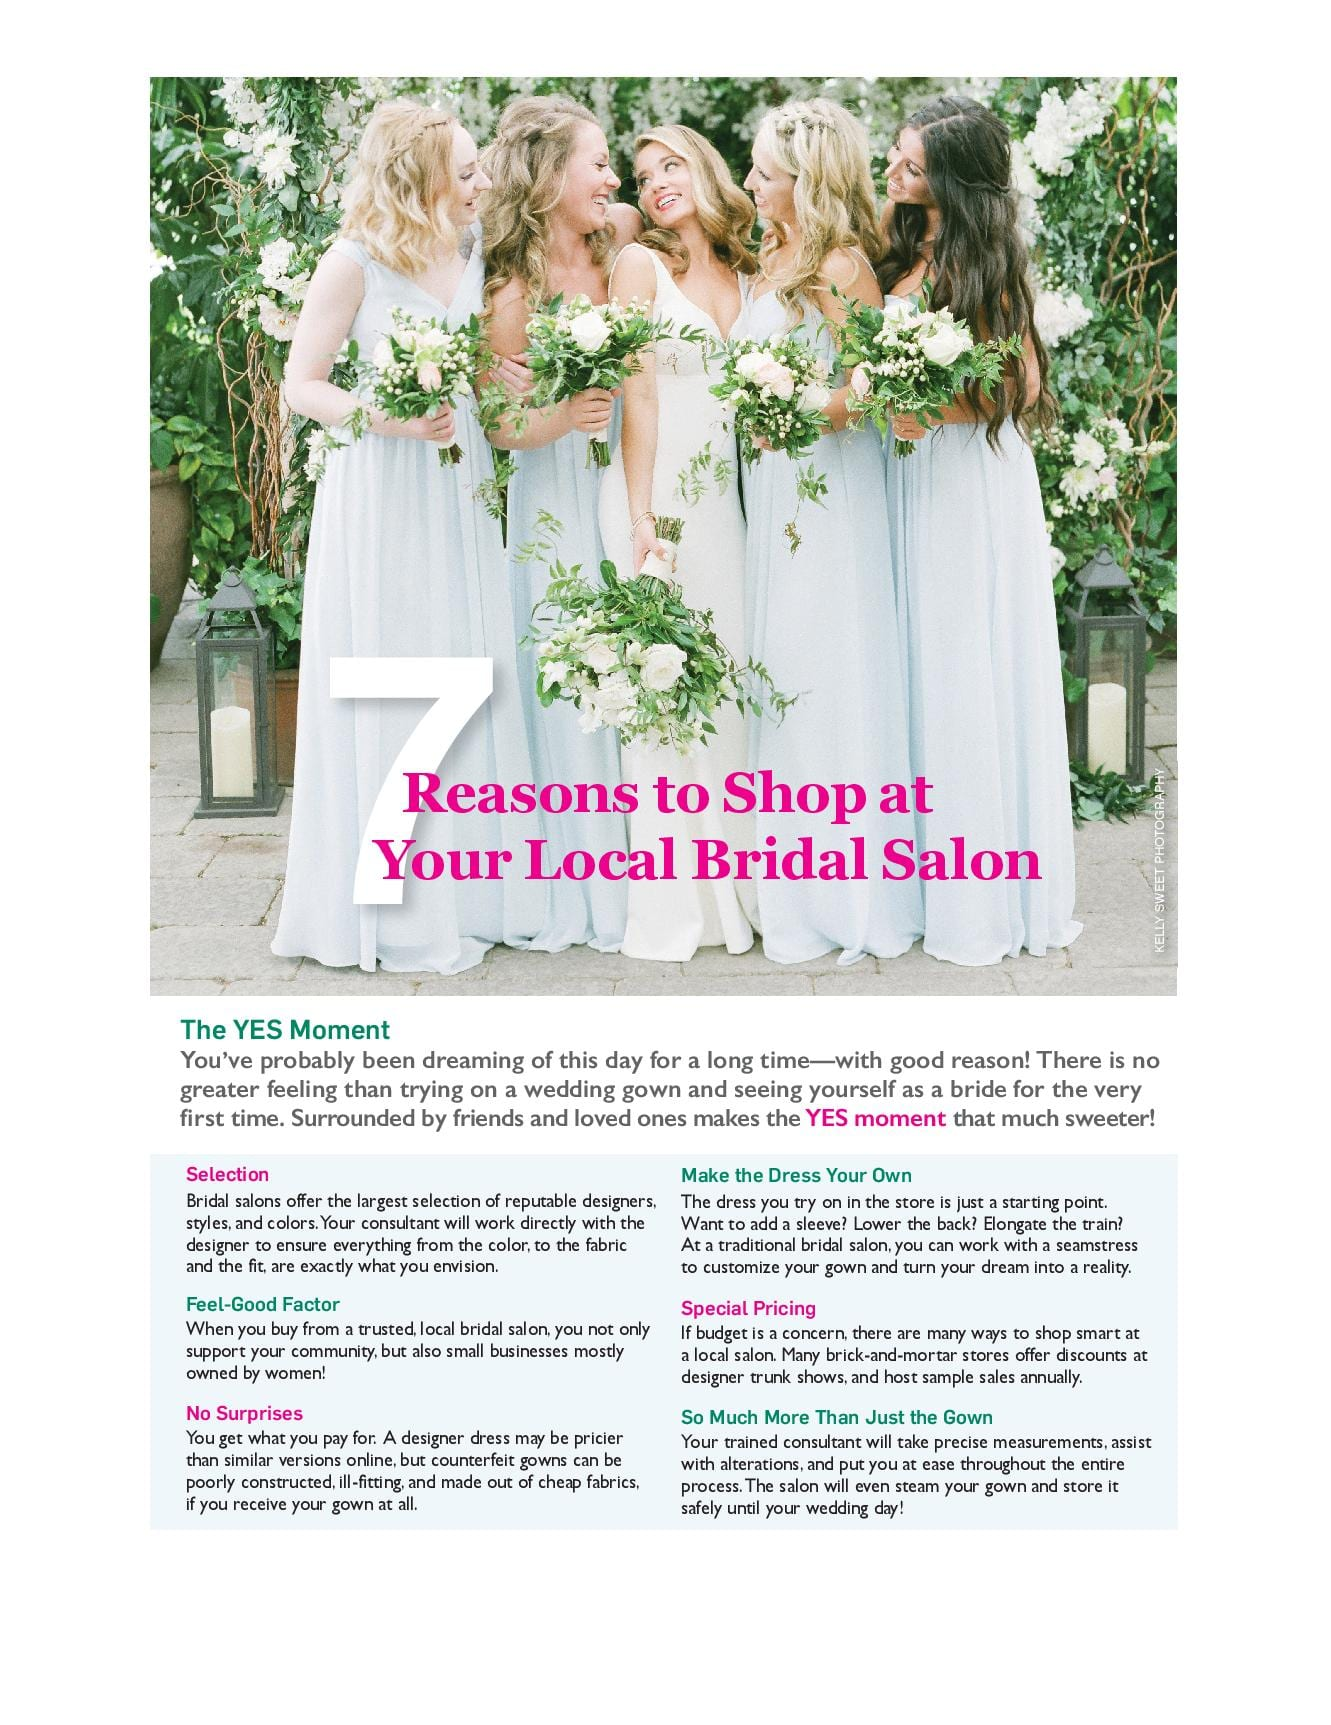 Bridal-Guide-7-Reasons-to-Shop-at-Your-Local-Bridal-Salon-2018-page-001.jpg